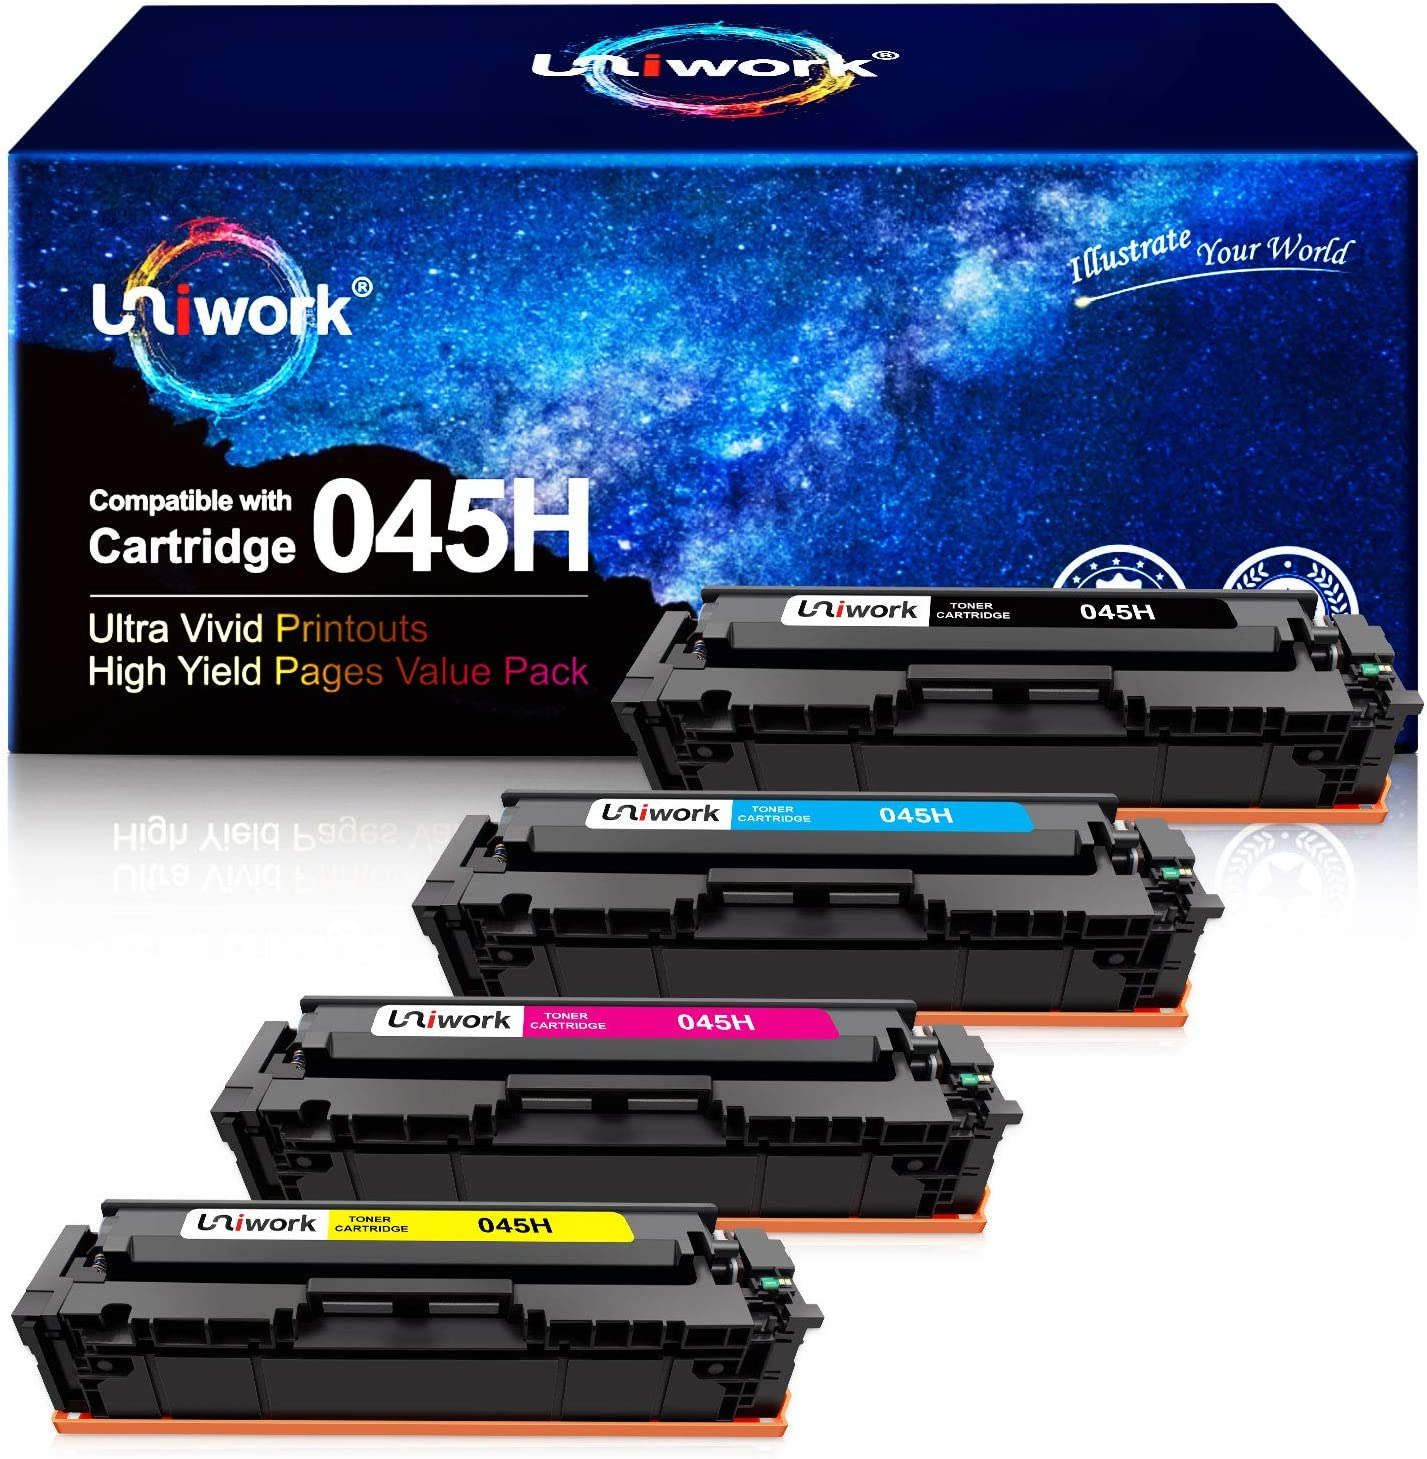 Uniwork Compatible Toner Cartridge Replacement for Canon 045 045H Cartridge 045 CRG-045H for Color imageCLASS MF634Cdw MF632Cdw LBP612Cdw MF632 MF634 Laser Printer Toner Ink Tray, 4 Pack